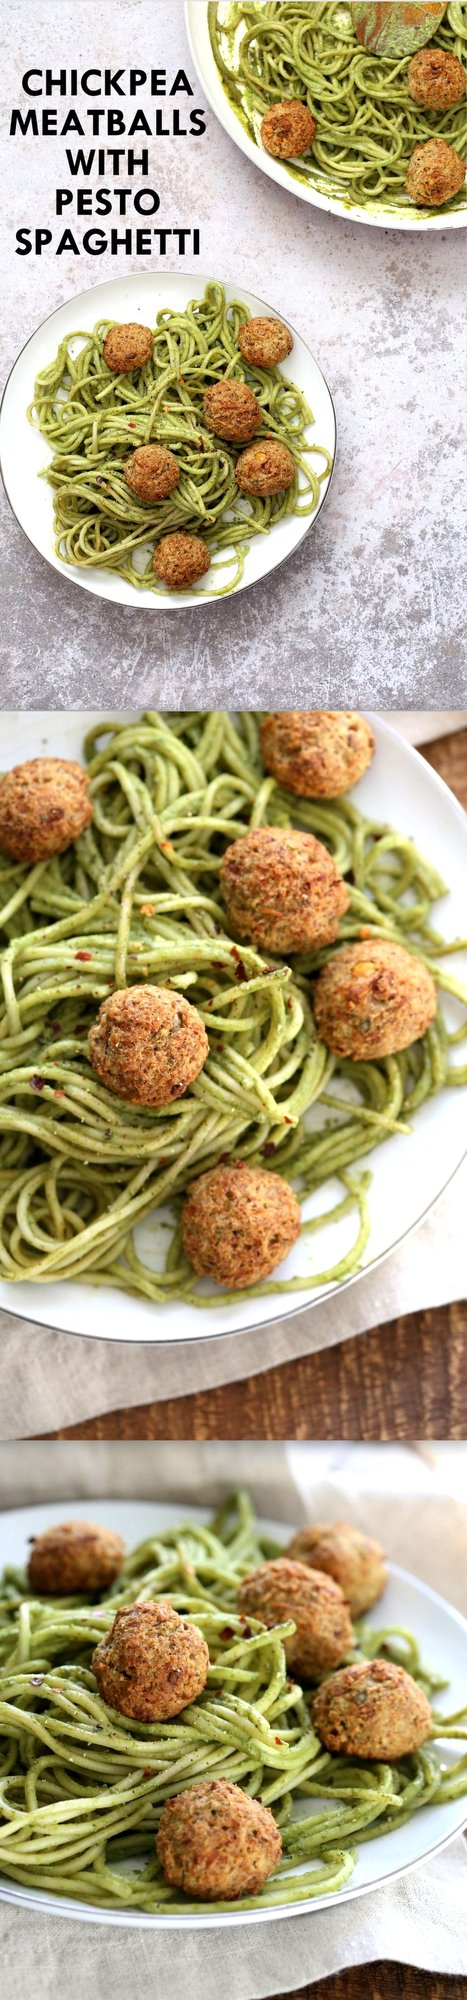 "Amazing Pesto Spaghetti with Vegan Meatballs made with Chickpeas. 24 Gm of Protein per Serve. Vegetarian Chickpea Walnut ""meatballs"" over pesto pasta. Ready in 40 Minutes. Vegan Soyfree Recipe. Can be Glutenfree 